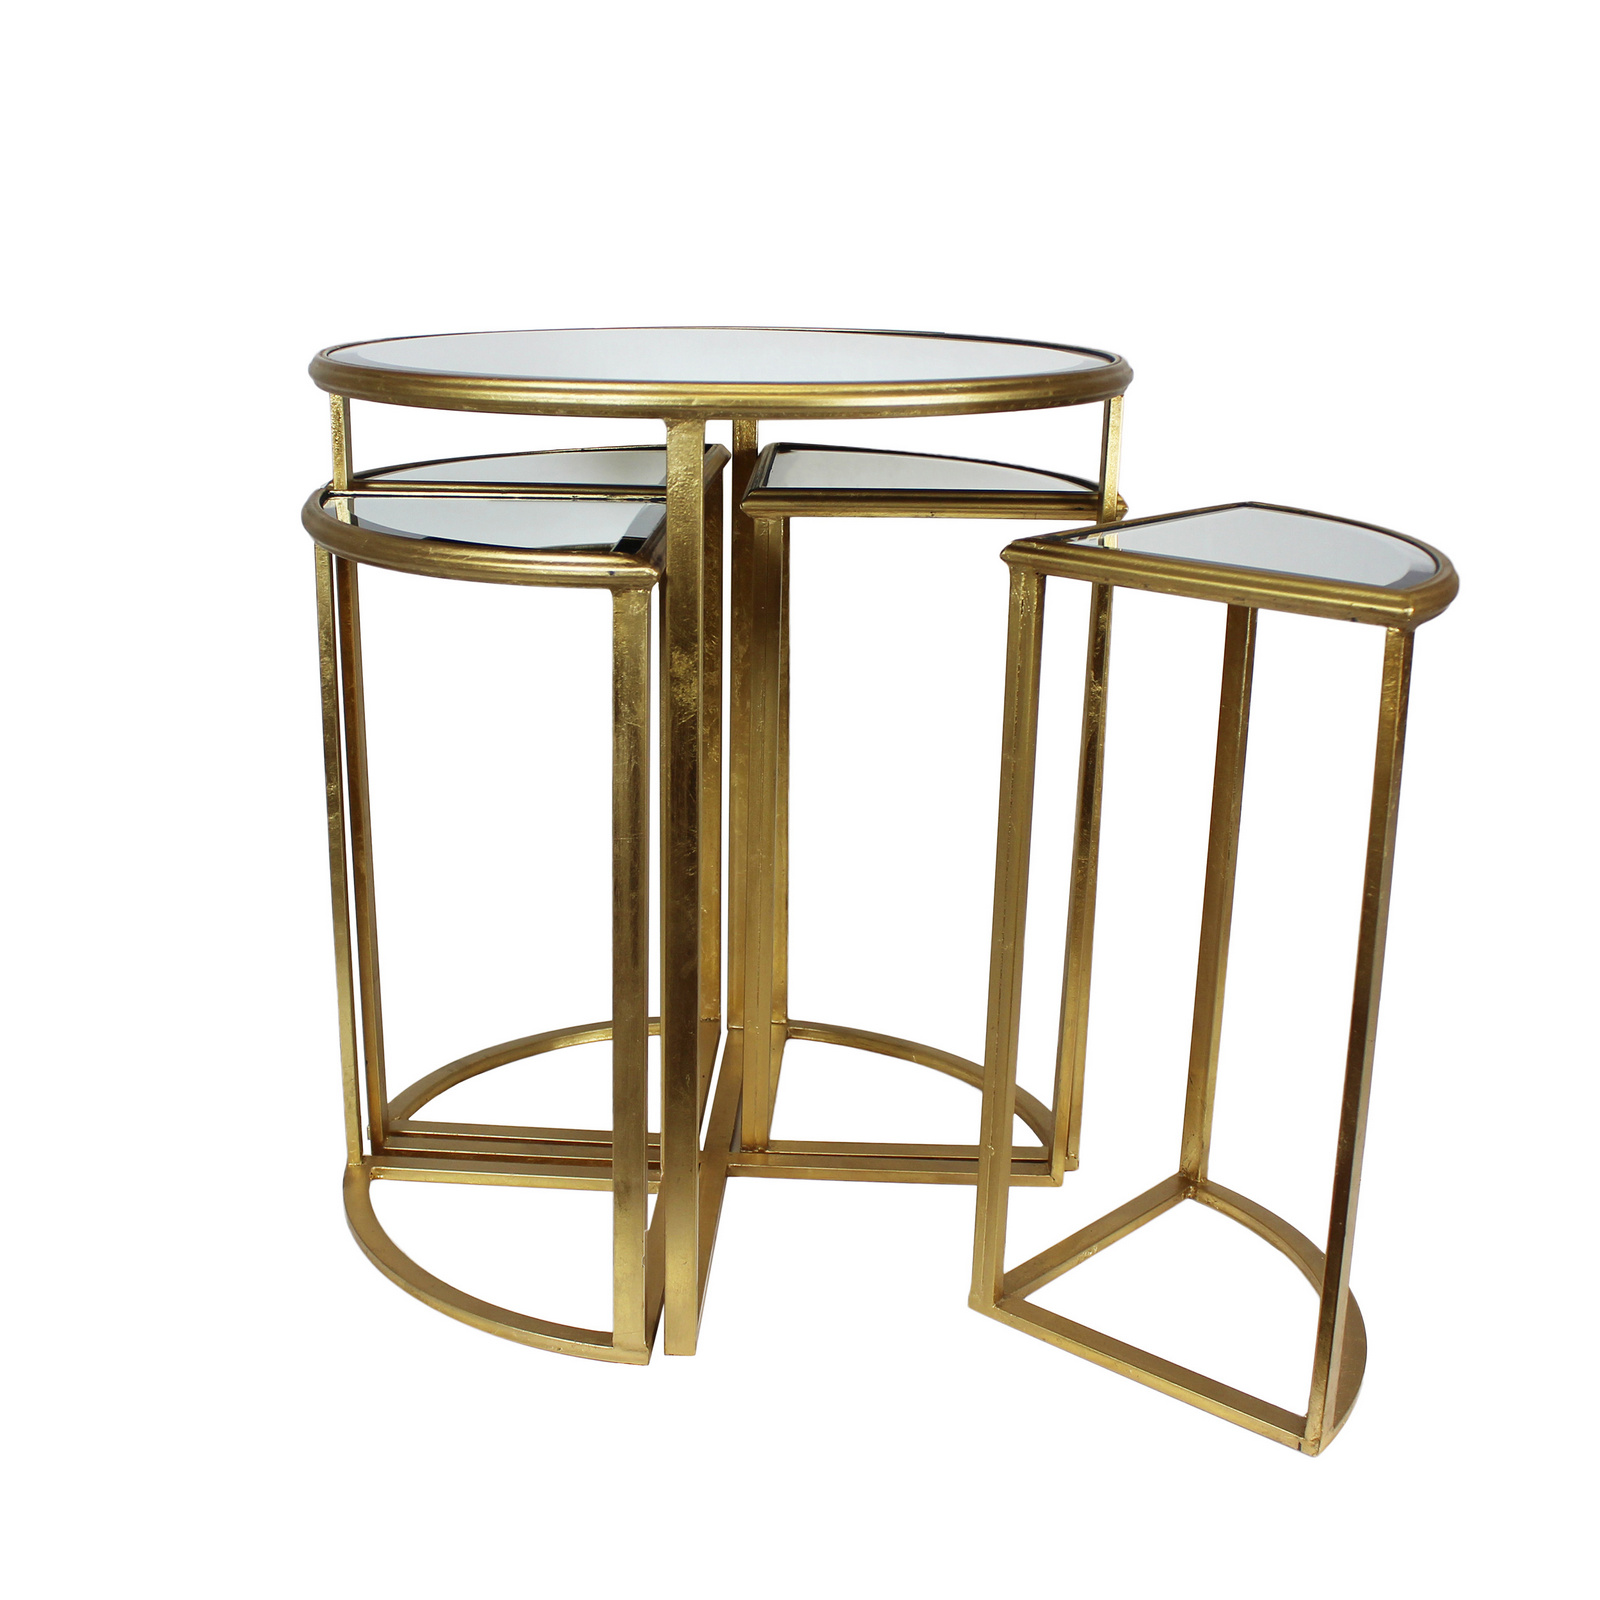 round gold accent table home design ideas montrez mom urban designs mirror set small mirrored desk pottery barn reading lamp inch fitted vinyl tablecloth unfinished bedside narrow